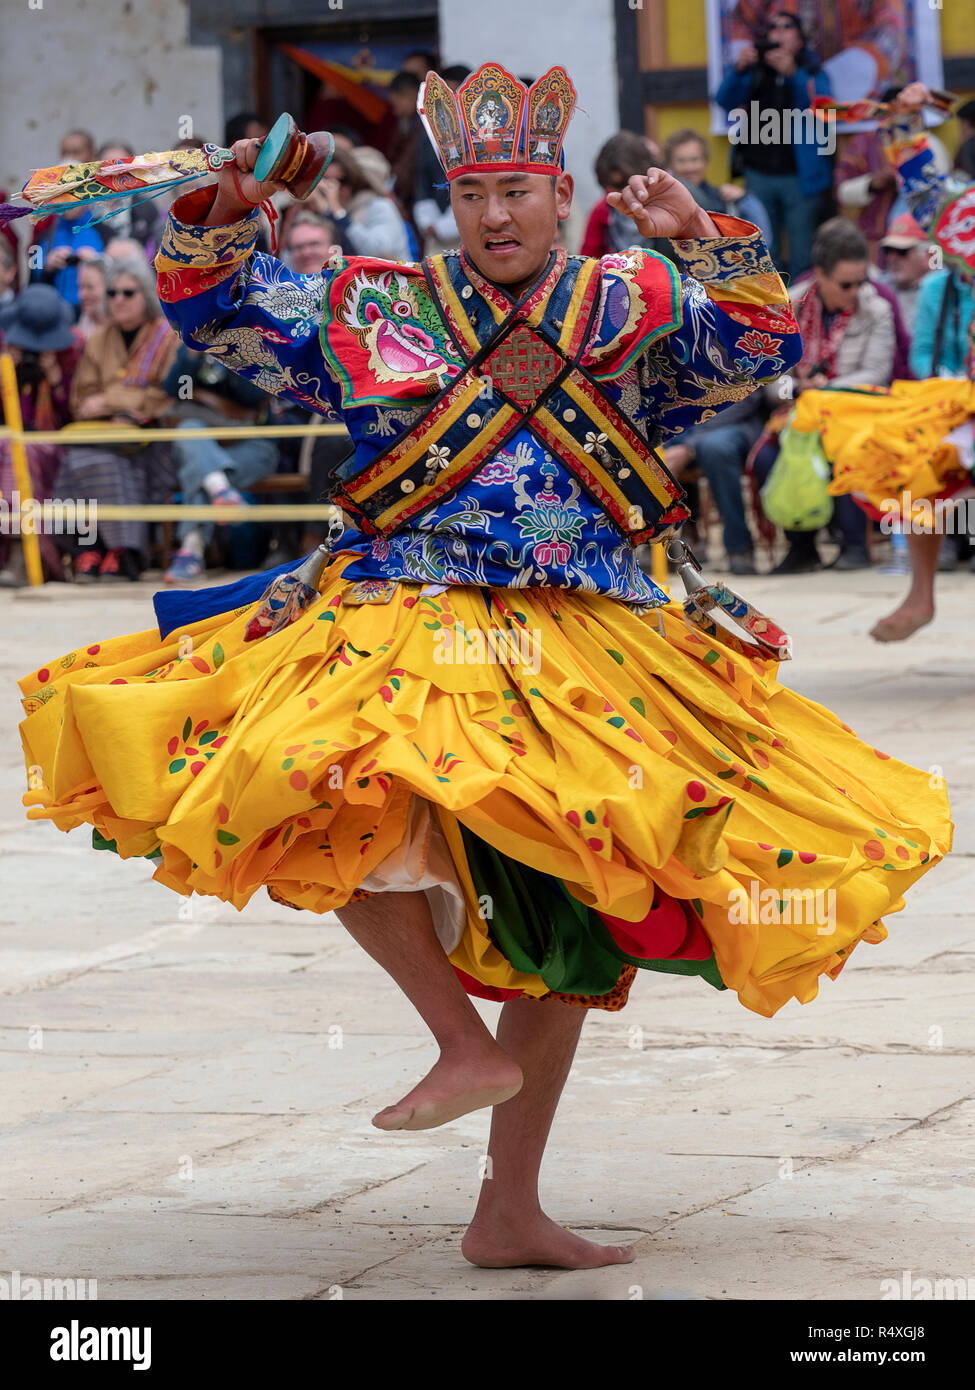 Dancers at the Black-Necked Crane Festival in Gangtey, Bhutan - Stock Image